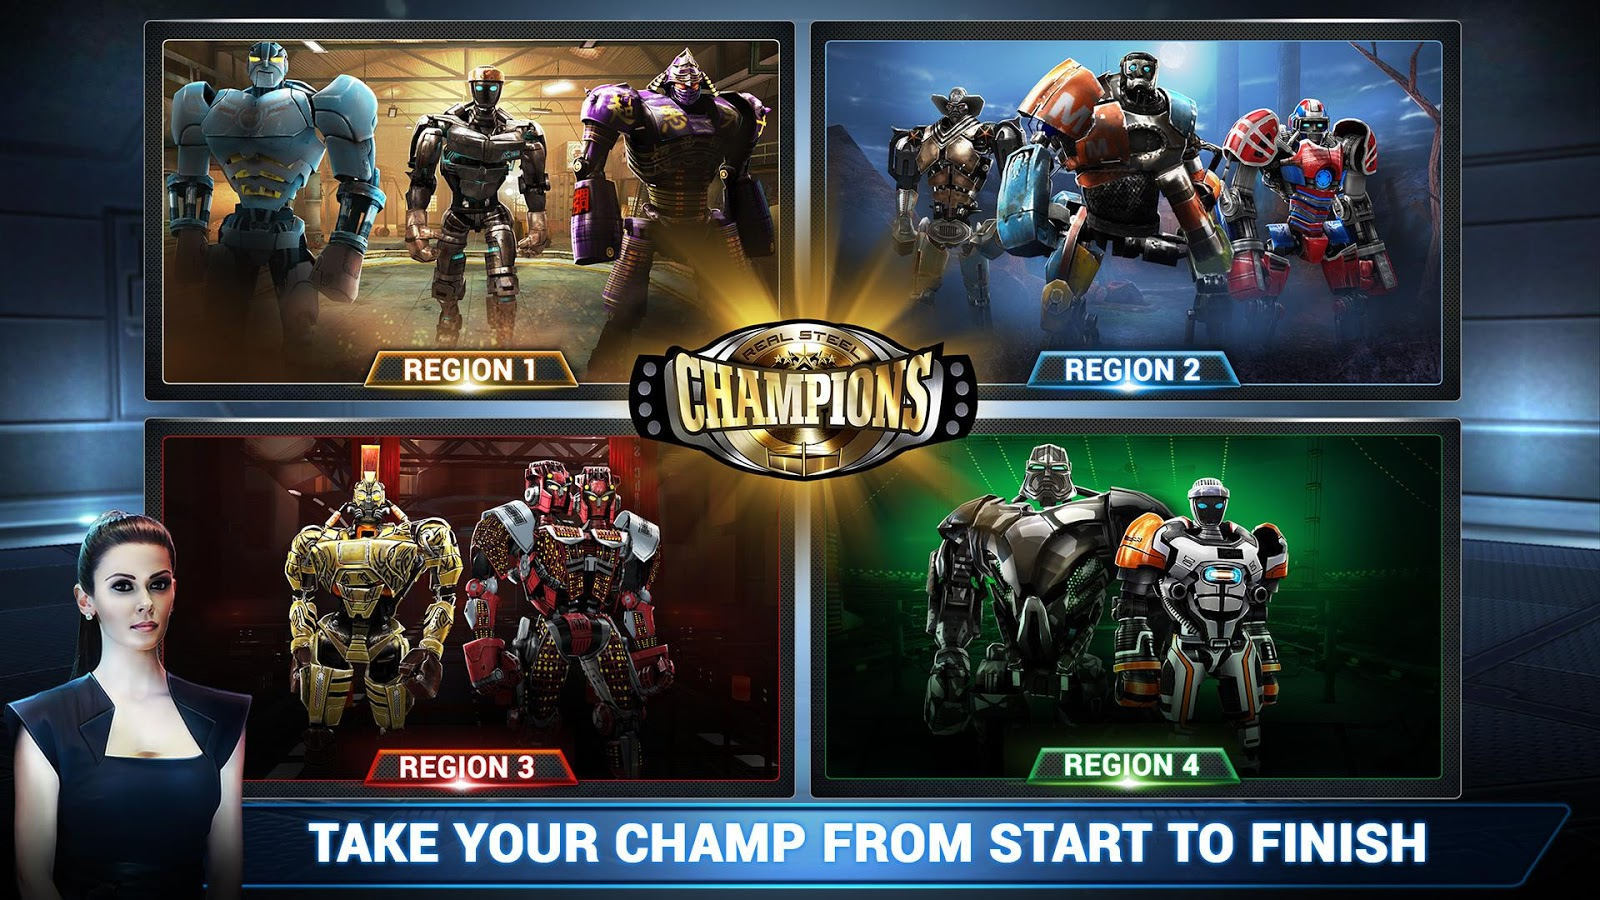 Real Steel Champions 4